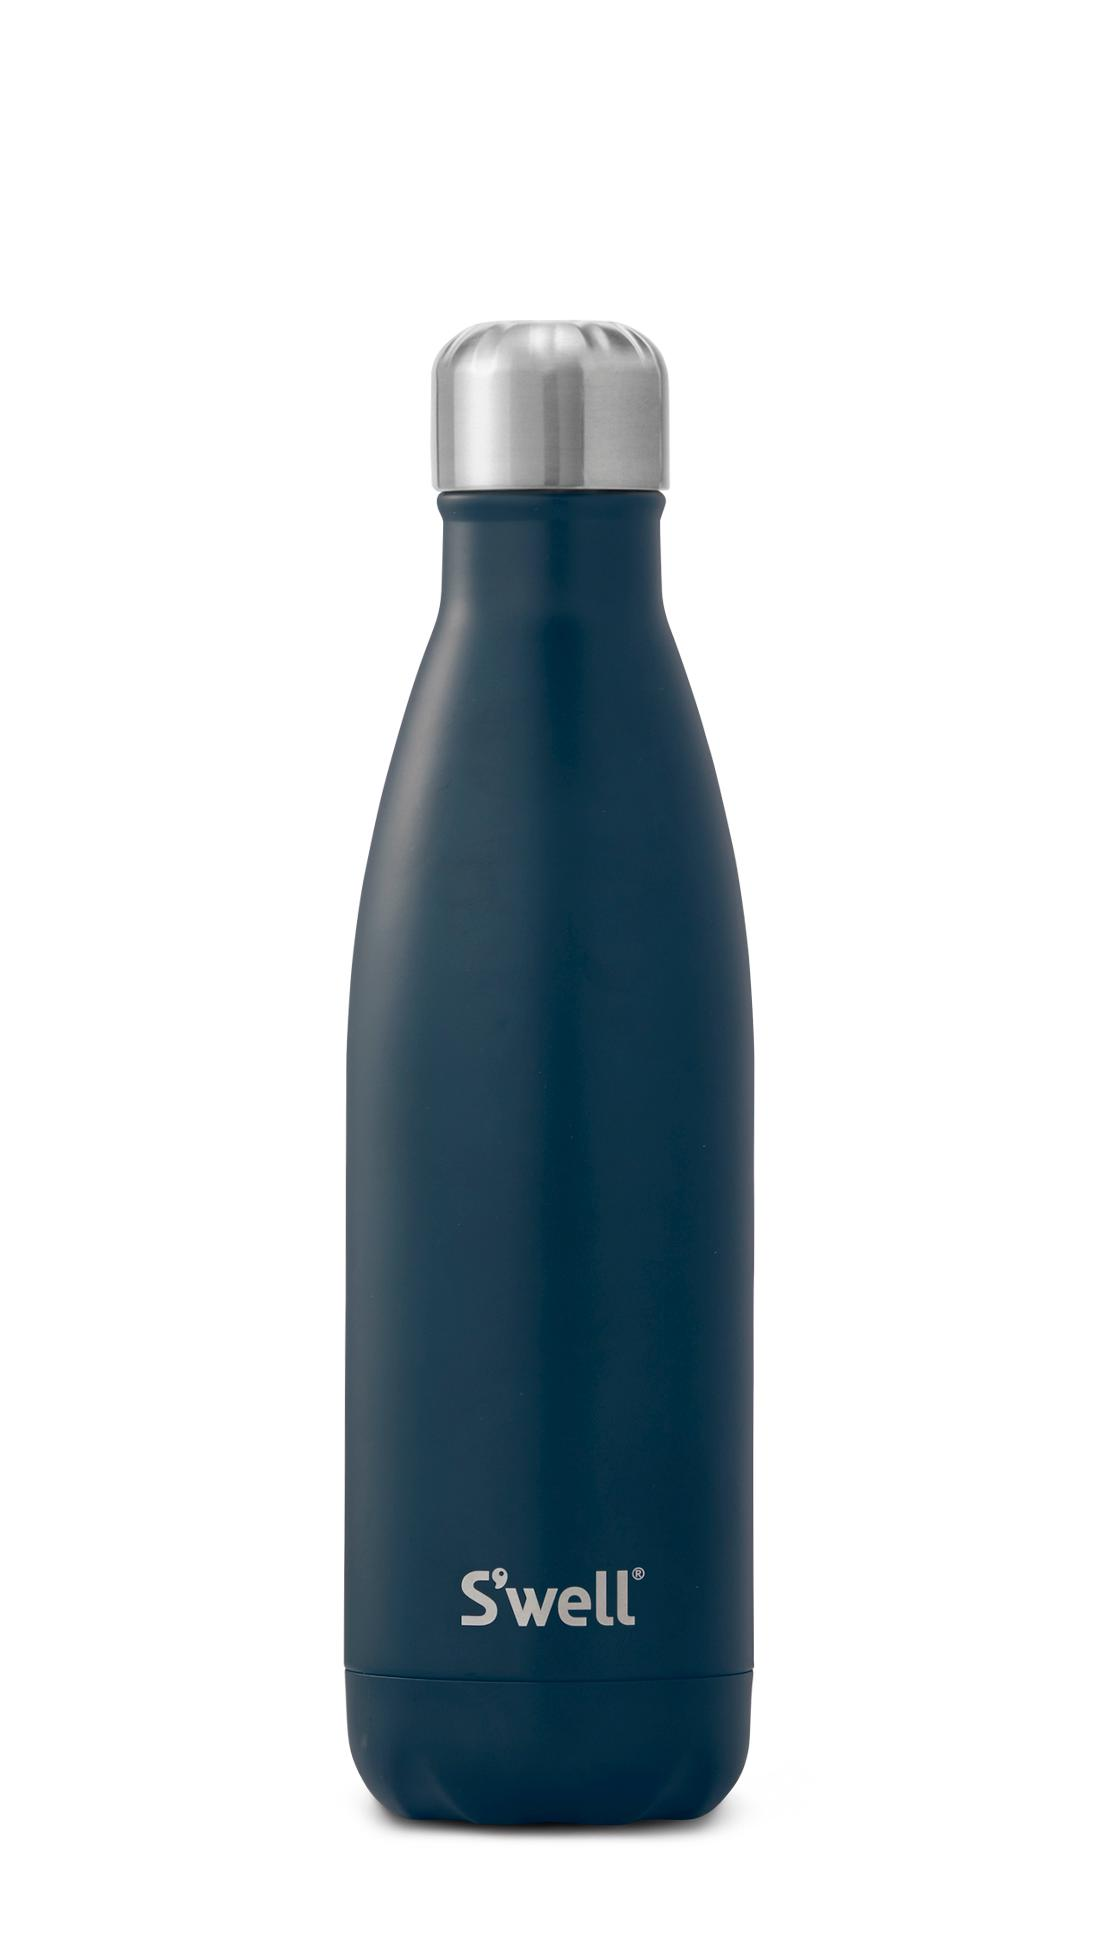 S'well Satin Collection Bottle // Price: $35 // (Image: S'well)<p></p>